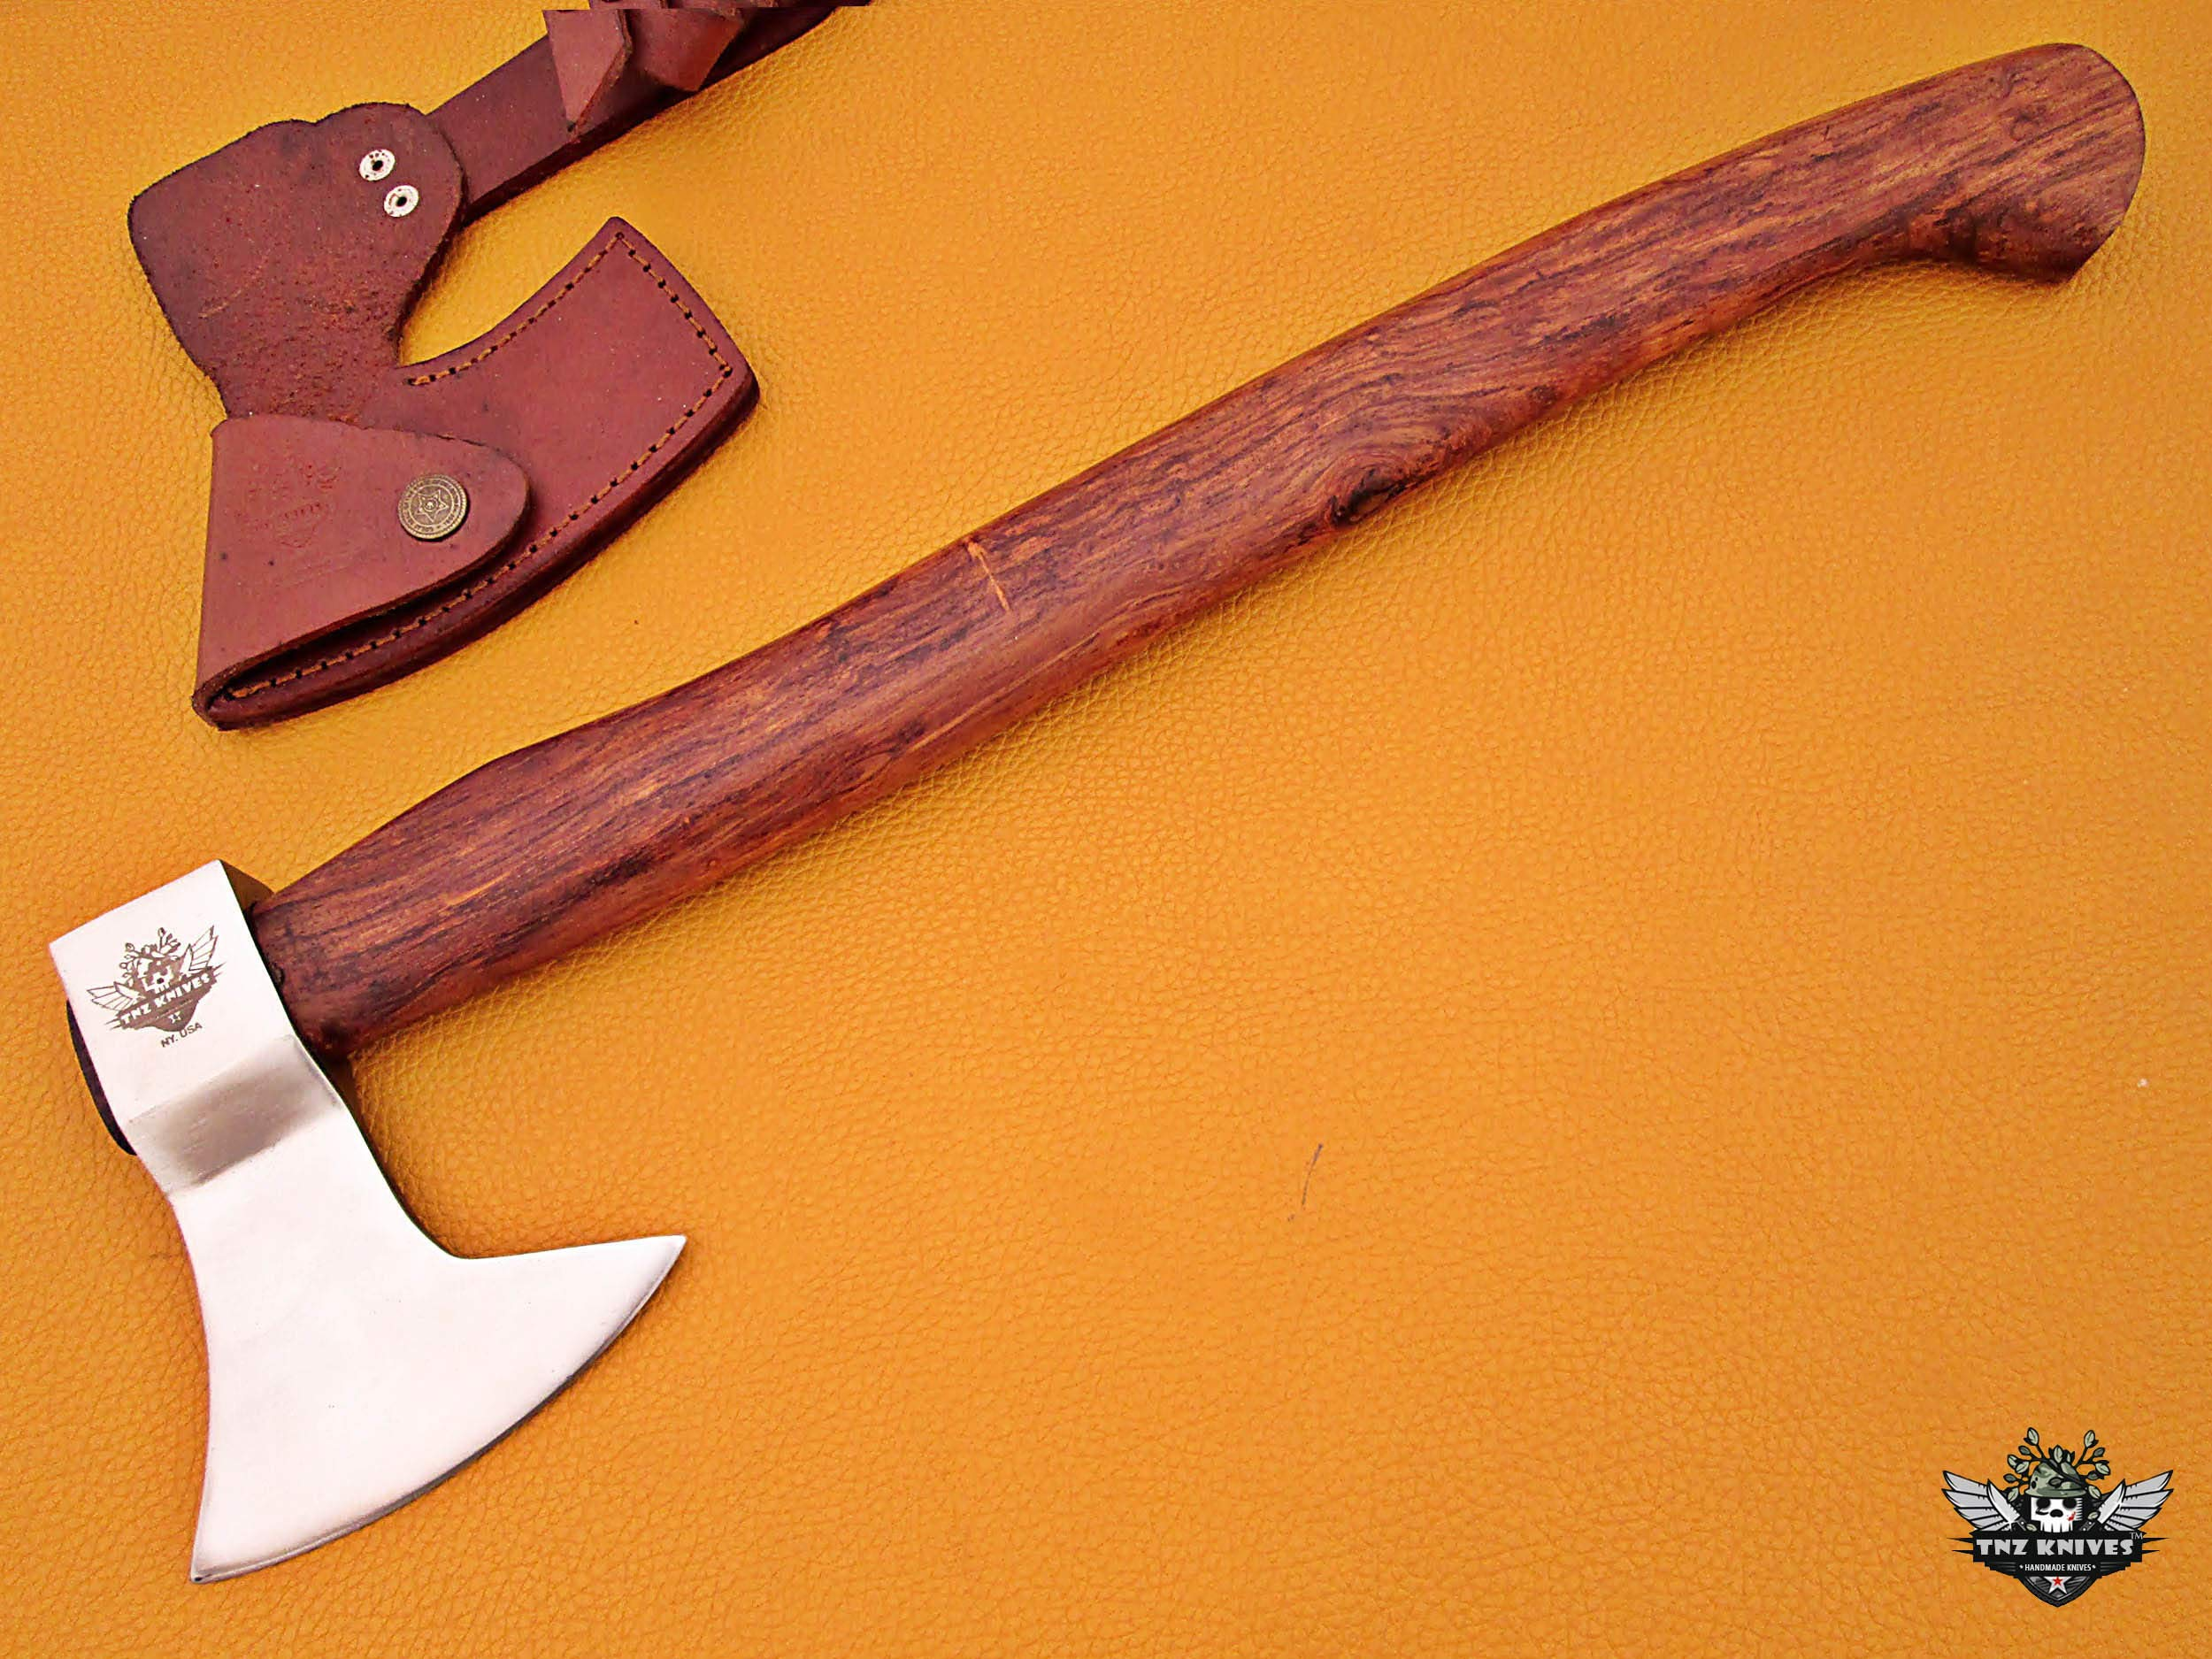 TNZ-611 High Carbon Axe 18 Long Hunting Camping Axe High Carbon Hatchet Viking Long Bearded Axe Leather Cover TNZ Hand Made High Carbon Knives